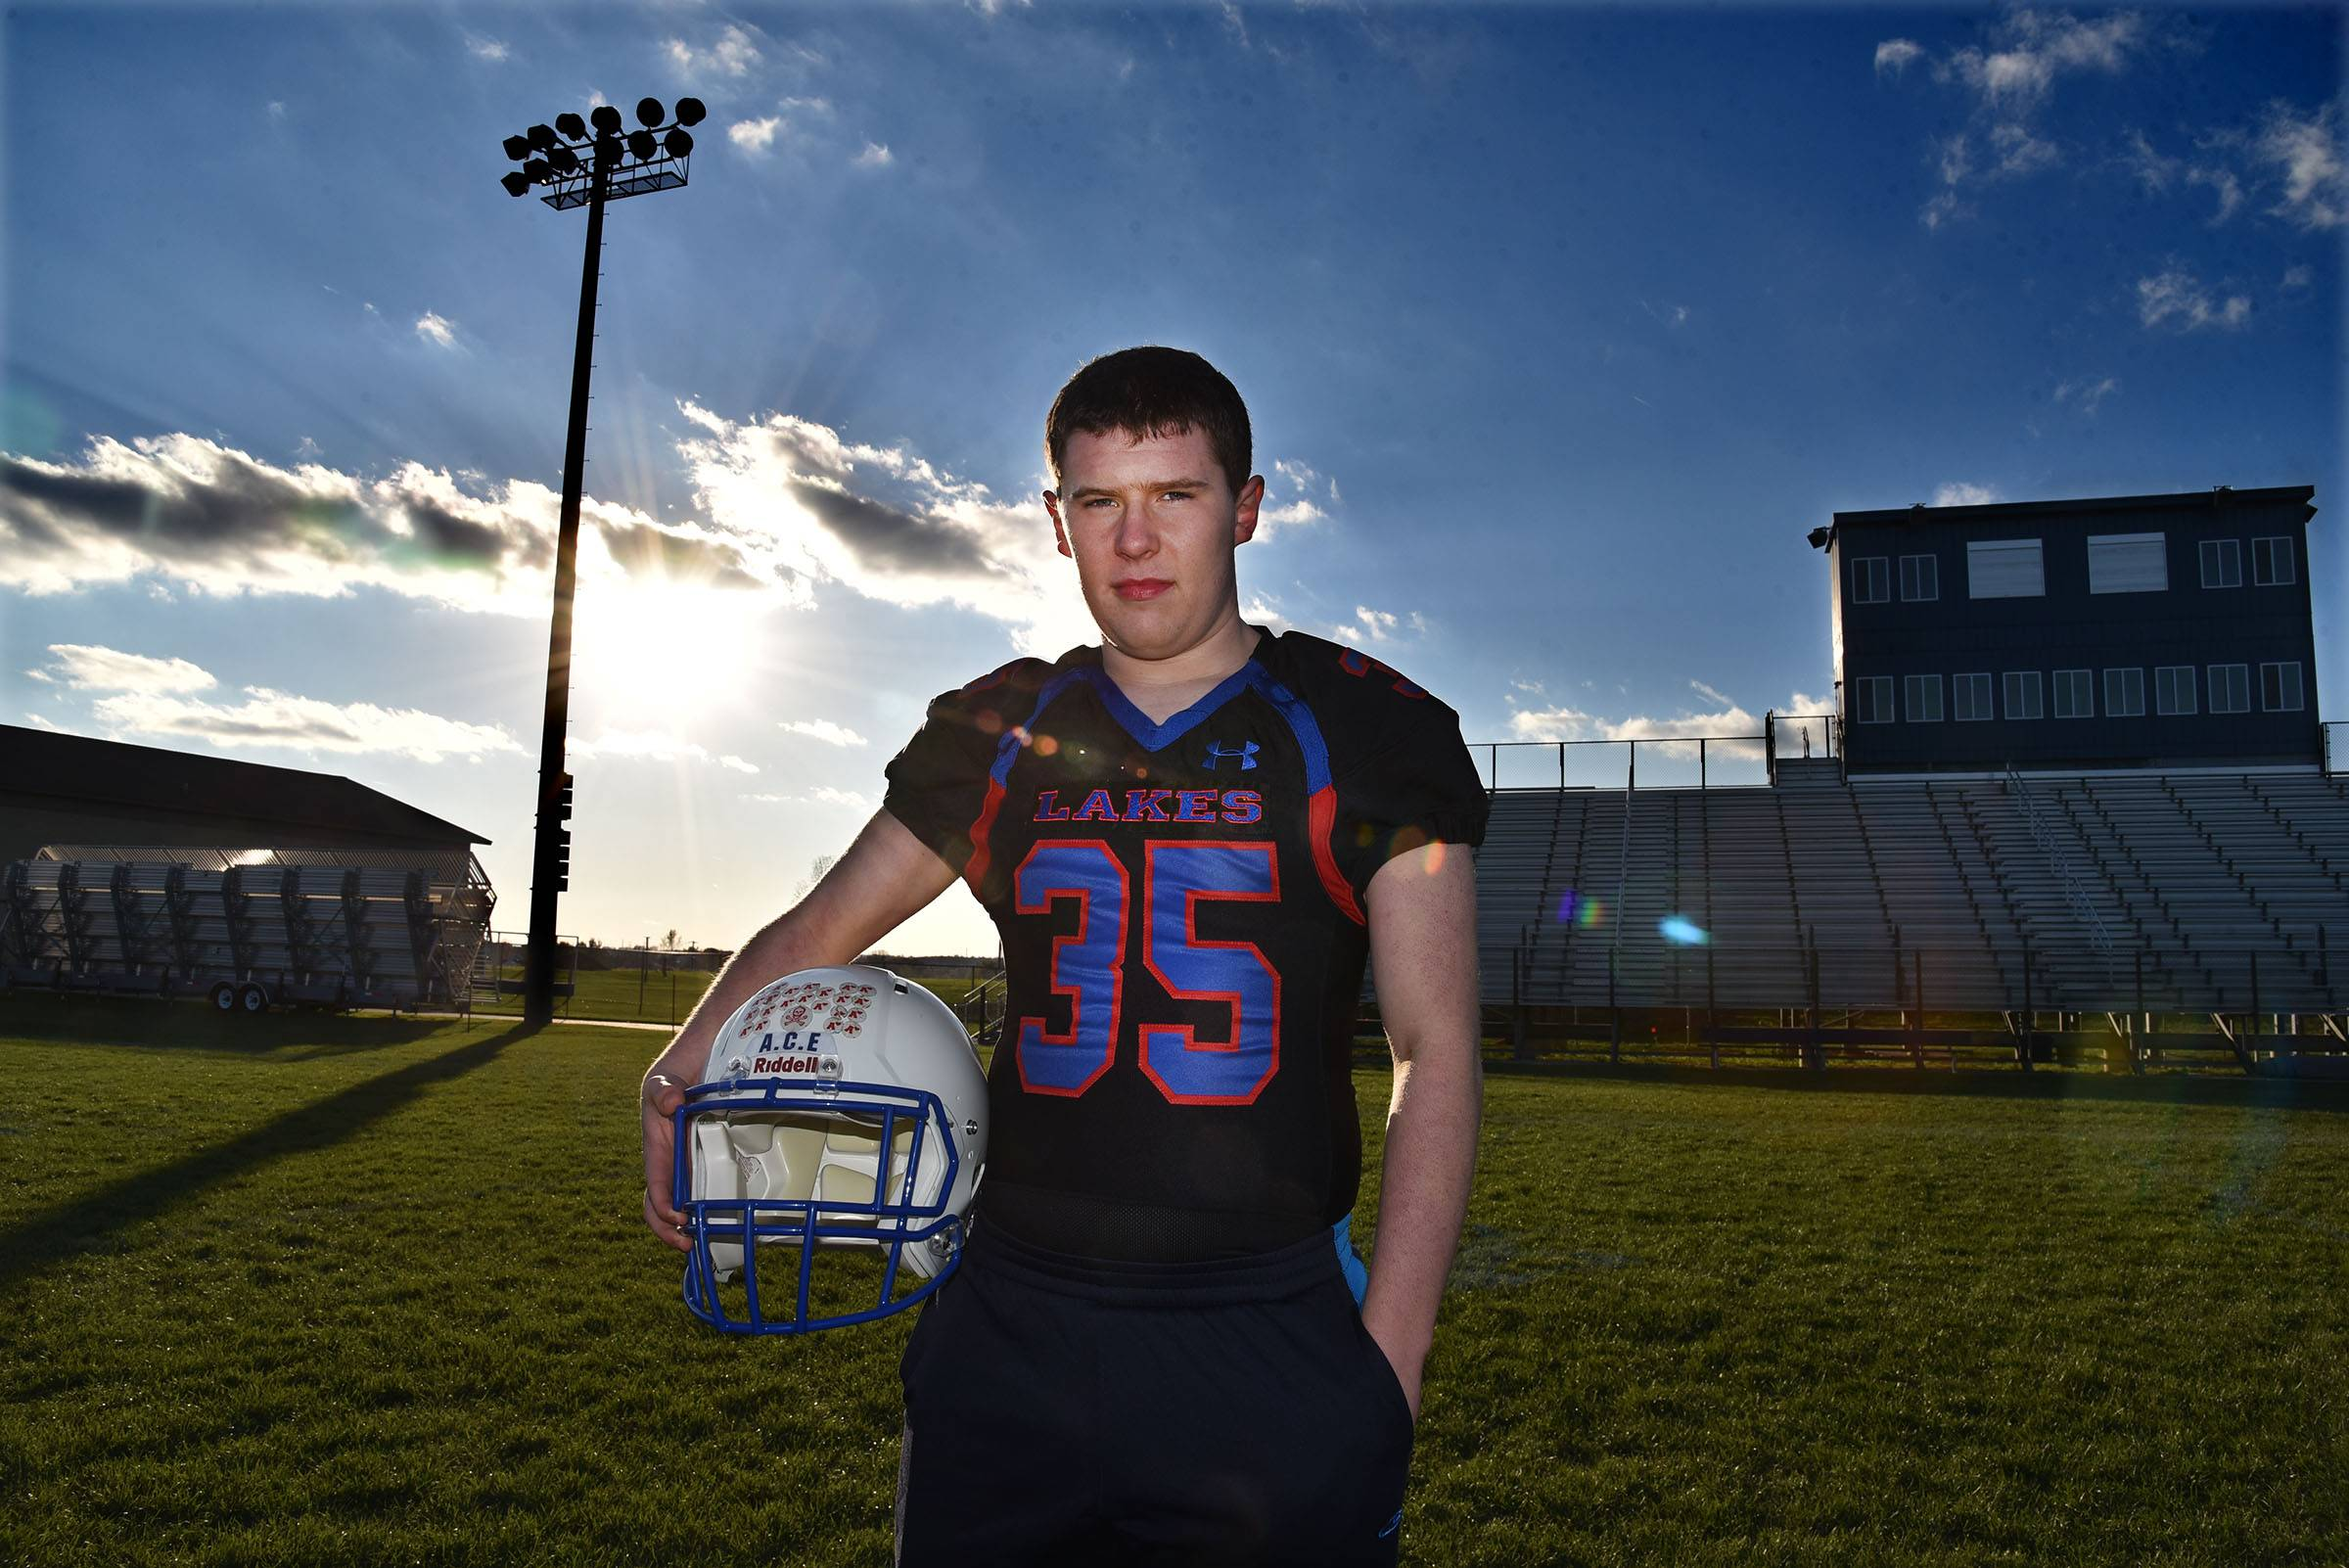 Zach Damenti played varsity football at Lakes High School in Lake Villa. He was diagnosed with autism as a child.